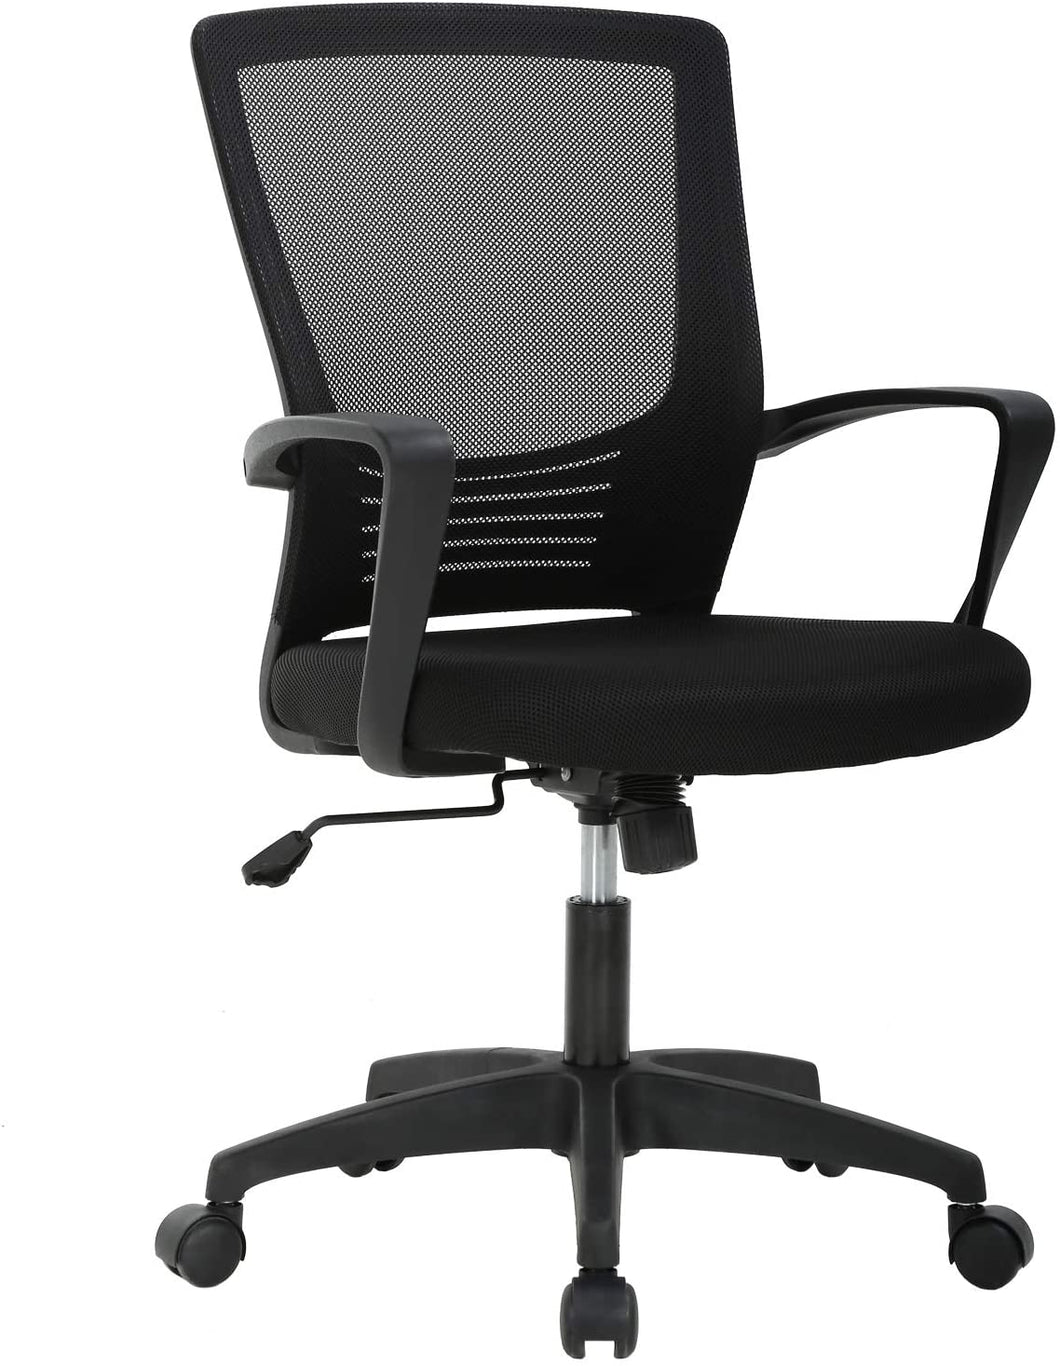 Ergonomic Office Modern Mesh Swivel Computer Chair with Lumbar Support Arms